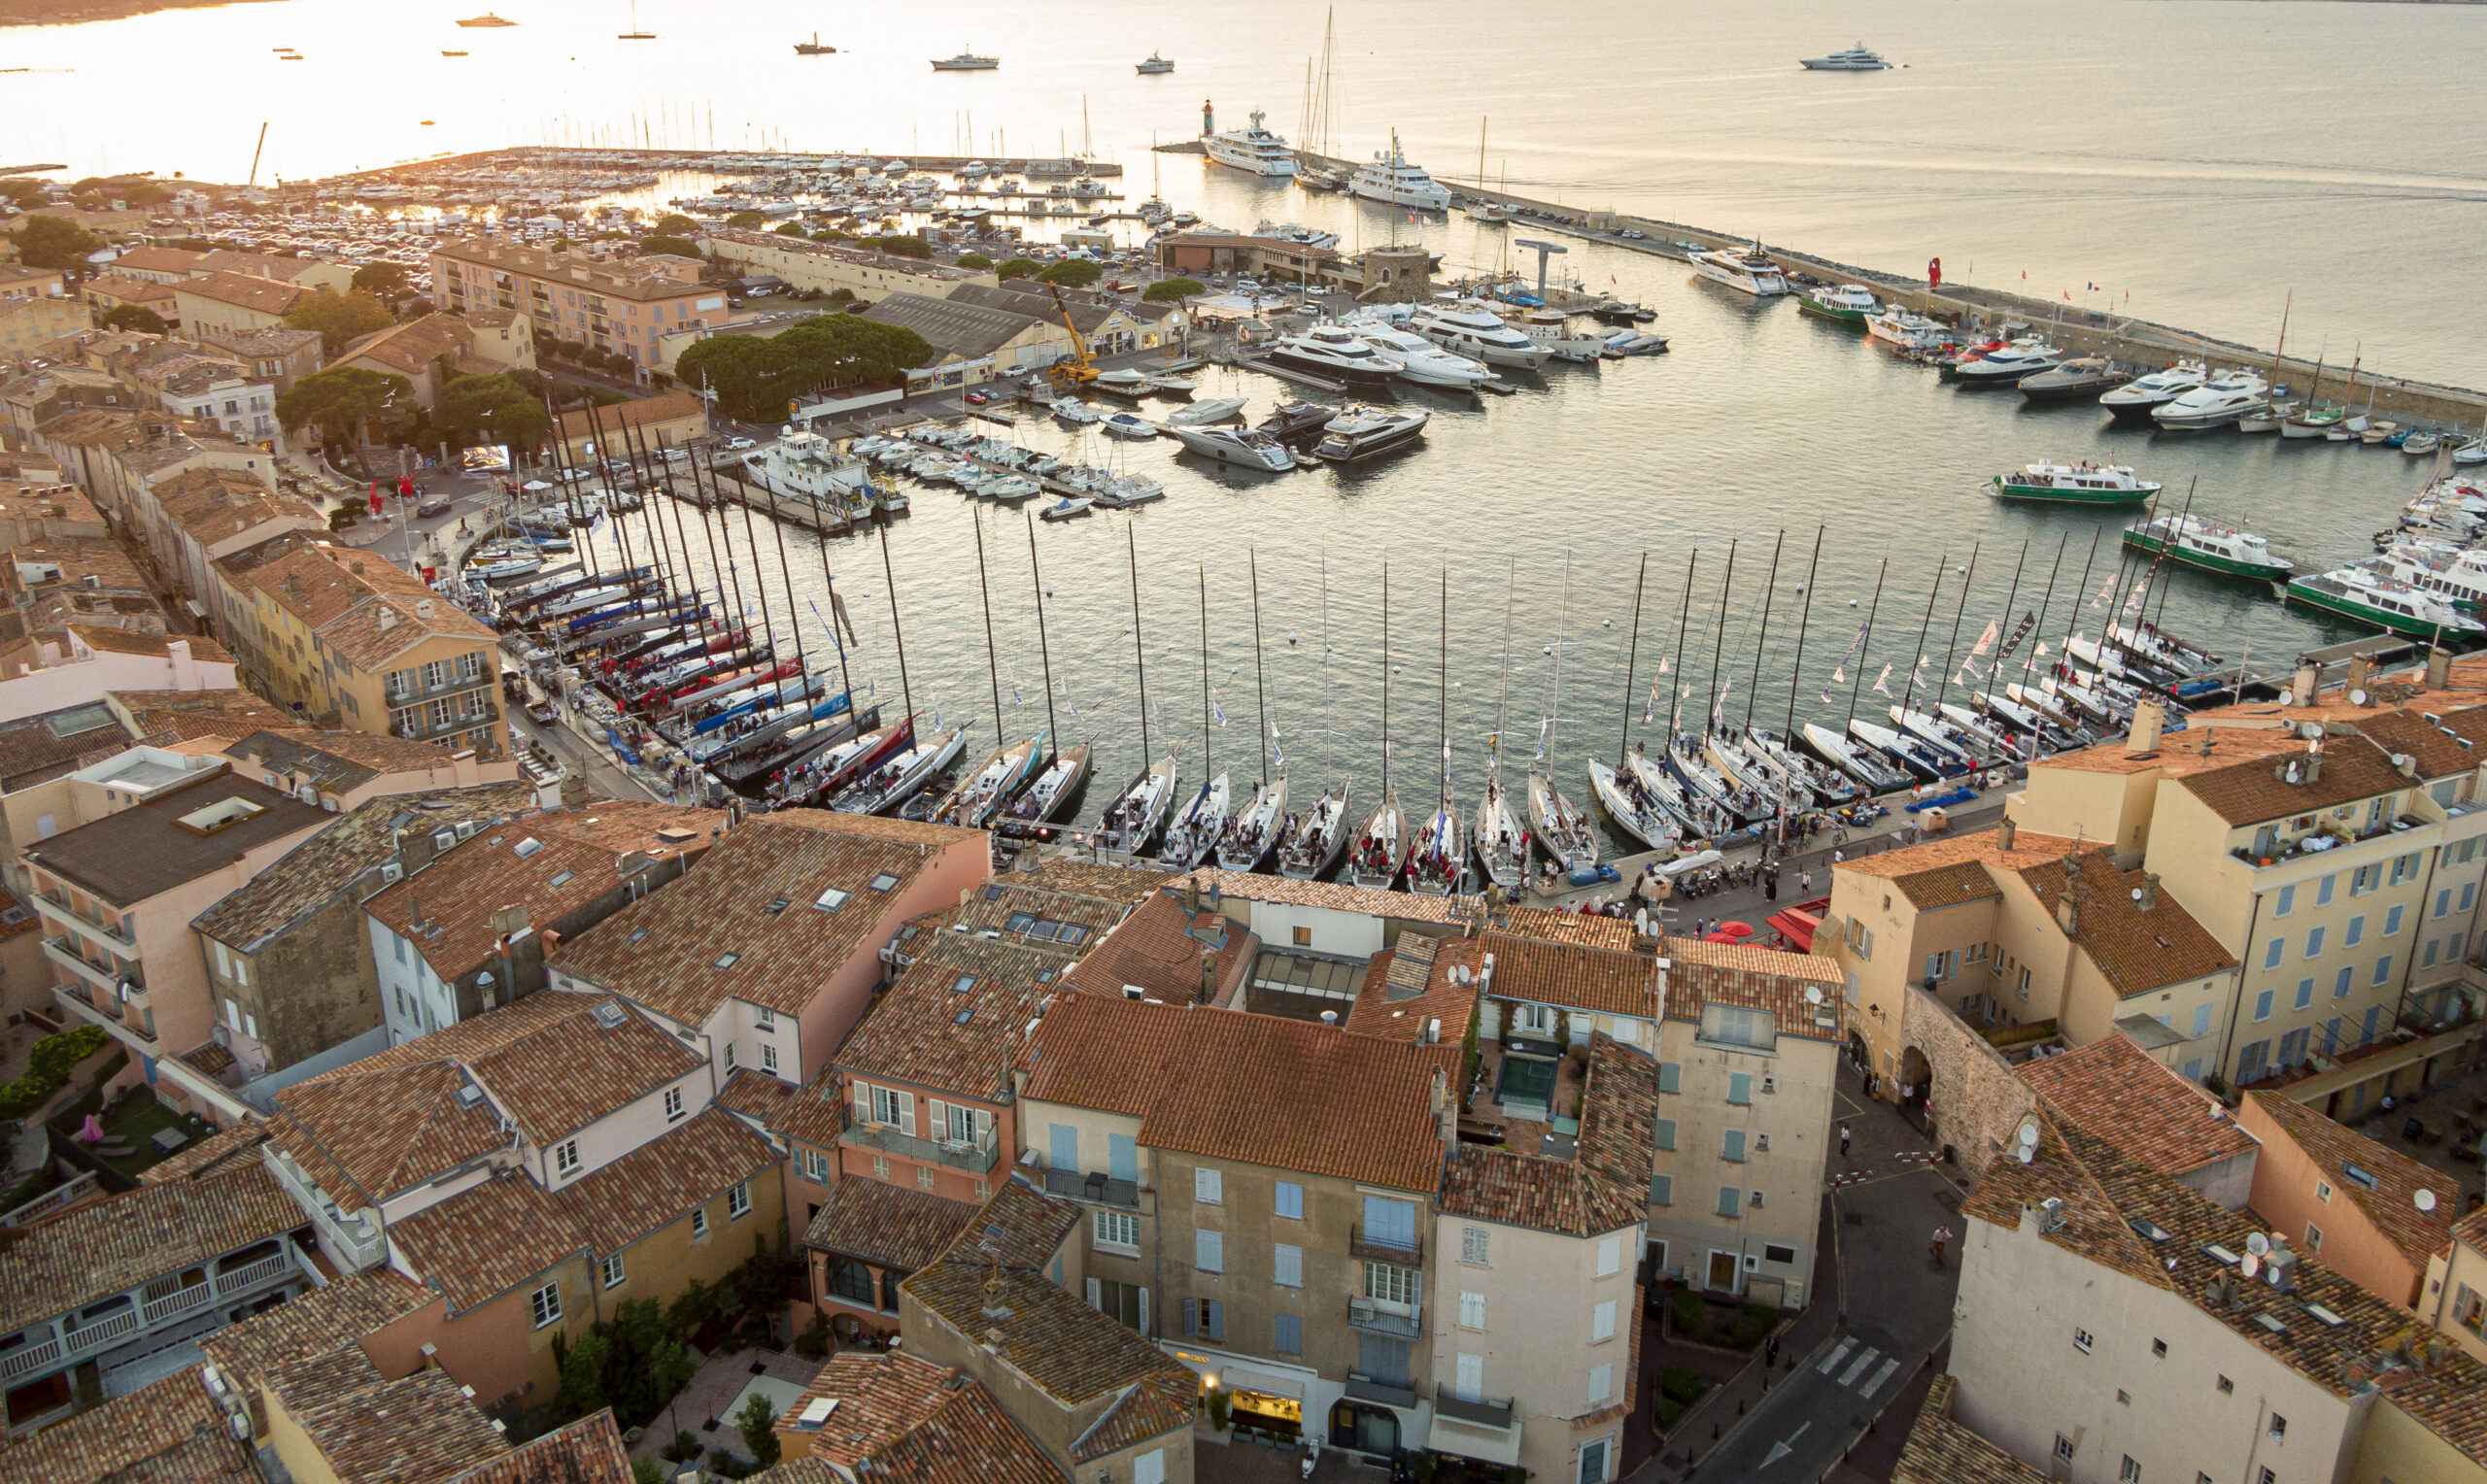 Aerial shot of St Tropez harbour, the boats at the dock.